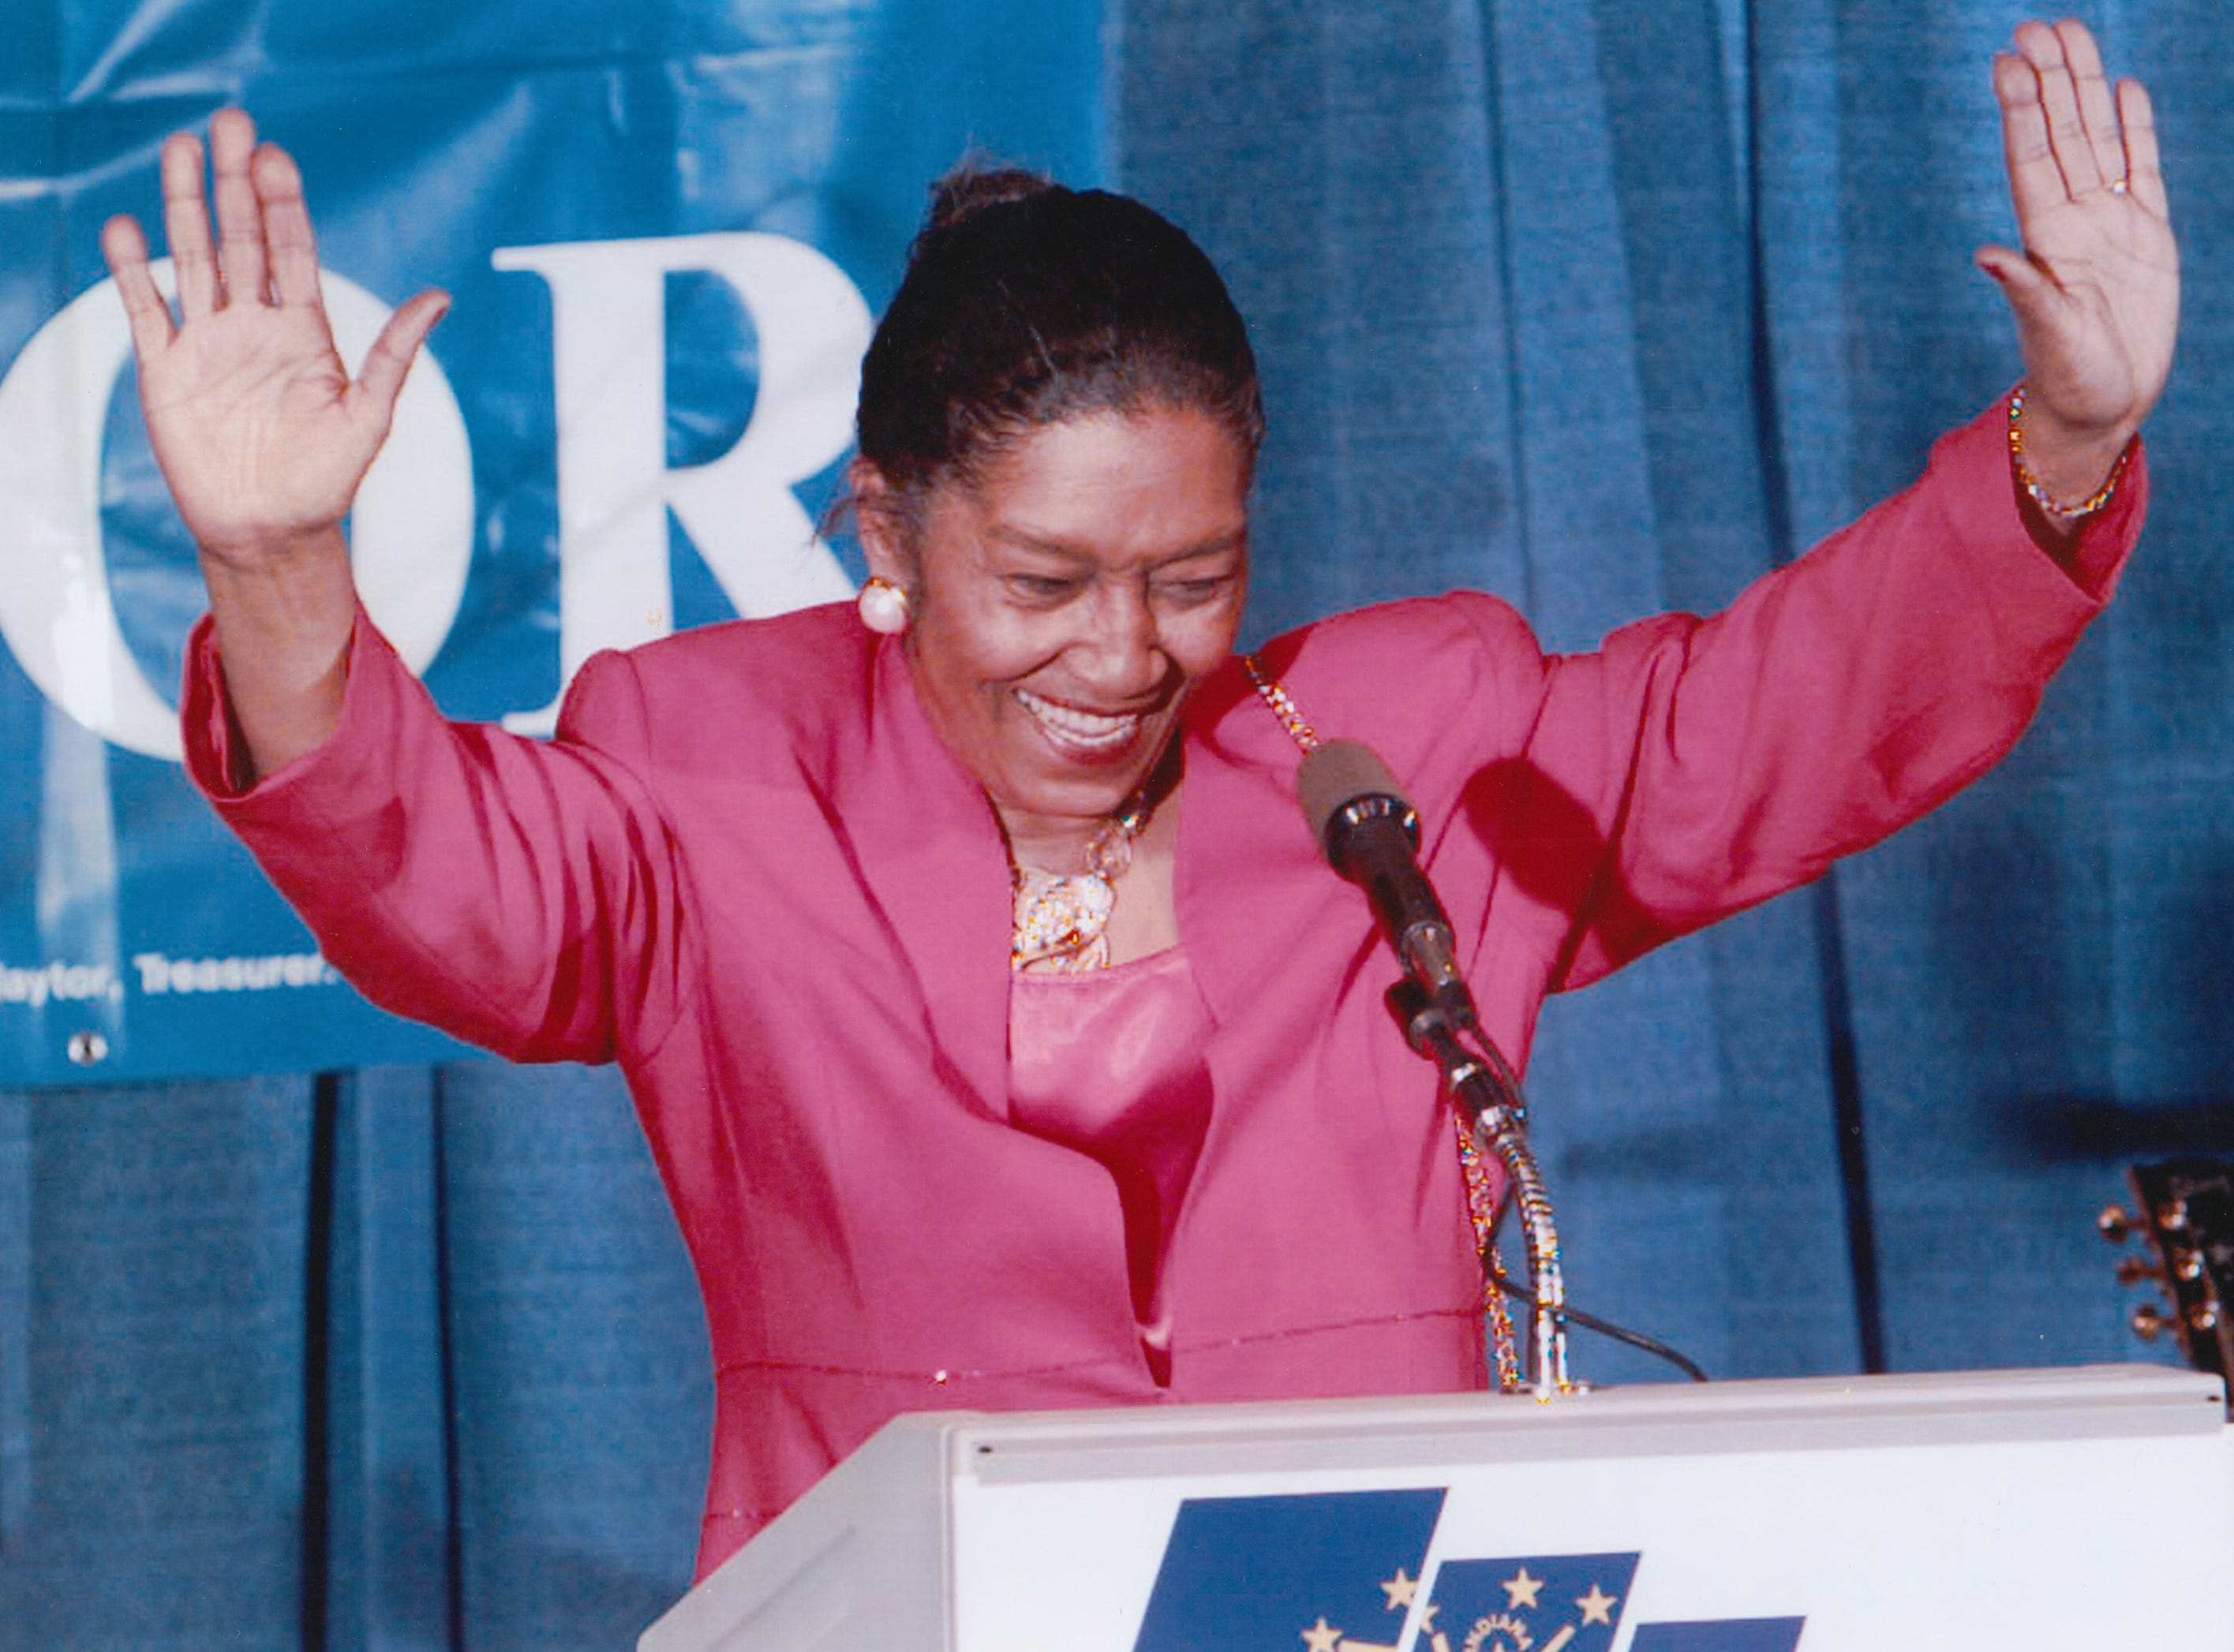 Julia Carson celebrates on stage at the convention center after her 10th Congressional District race victory Nov. 5, 1996